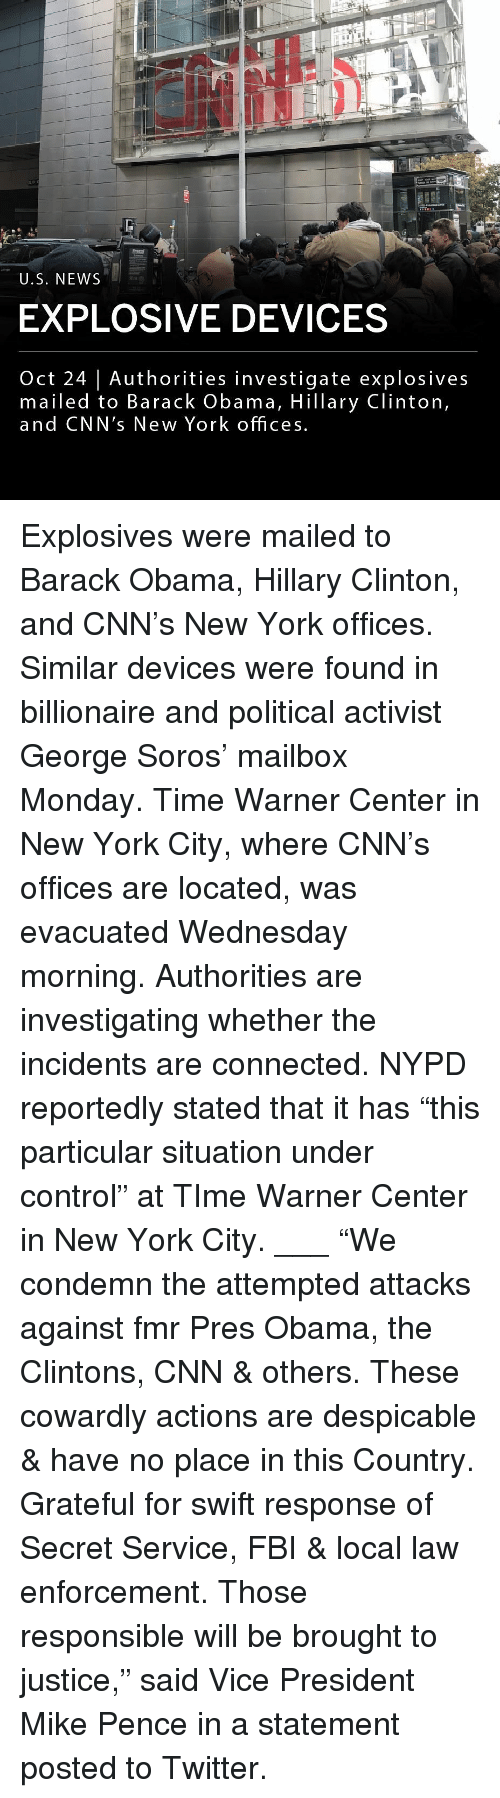 "secret service: U.S. NEWS  EXPLOSIVE DEVICES  Oct 24 | Authorities investigate explosives  mailed to Barack Obama, Hillary Clinton,  and CNN's New York offices Explosives were mailed to Barack Obama, Hillary Clinton, and CNN's New York offices. Similar devices were found in billionaire and political activist George Soros' mailbox Monday. Time Warner Center in New York City, where CNN's offices are located, was evacuated Wednesday morning. Authorities are investigating whether the incidents are connected. NYPD reportedly stated that it has ""this particular situation under control"" at TIme Warner Center in New York City. ___ ""We condemn the attempted attacks against fmr Pres Obama, the Clintons, CNN & others. These cowardly actions are despicable & have no place in this Country. Grateful for swift response of Secret Service, FBI & local law enforcement. Those responsible will be brought to justice,"" said Vice President Mike Pence in a statement posted to Twitter."